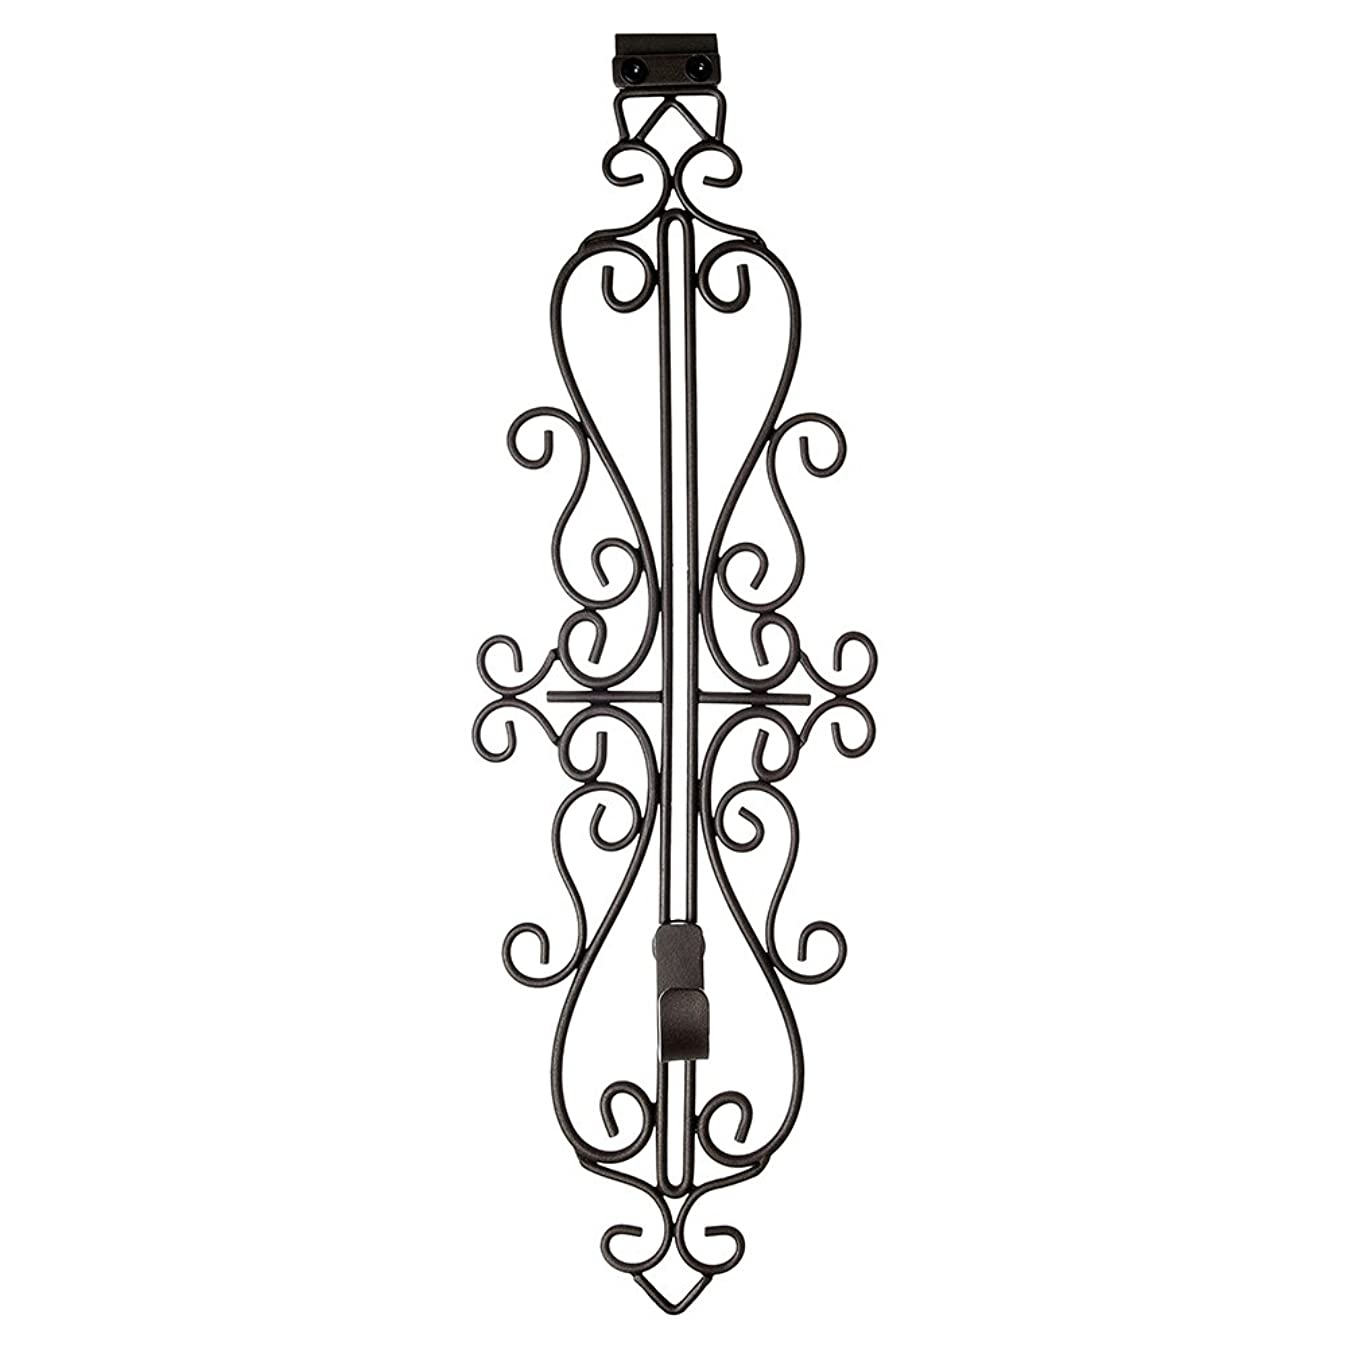 [Front Door WREATH HANGER] - Colonial Design | ADJUSTABLE Hook Length for Tall and Small Doors | PADDING to Prevent Damage like Scratch and Dents | Heavy Duty Cast Iron Metal Hangar - BROWN Finish